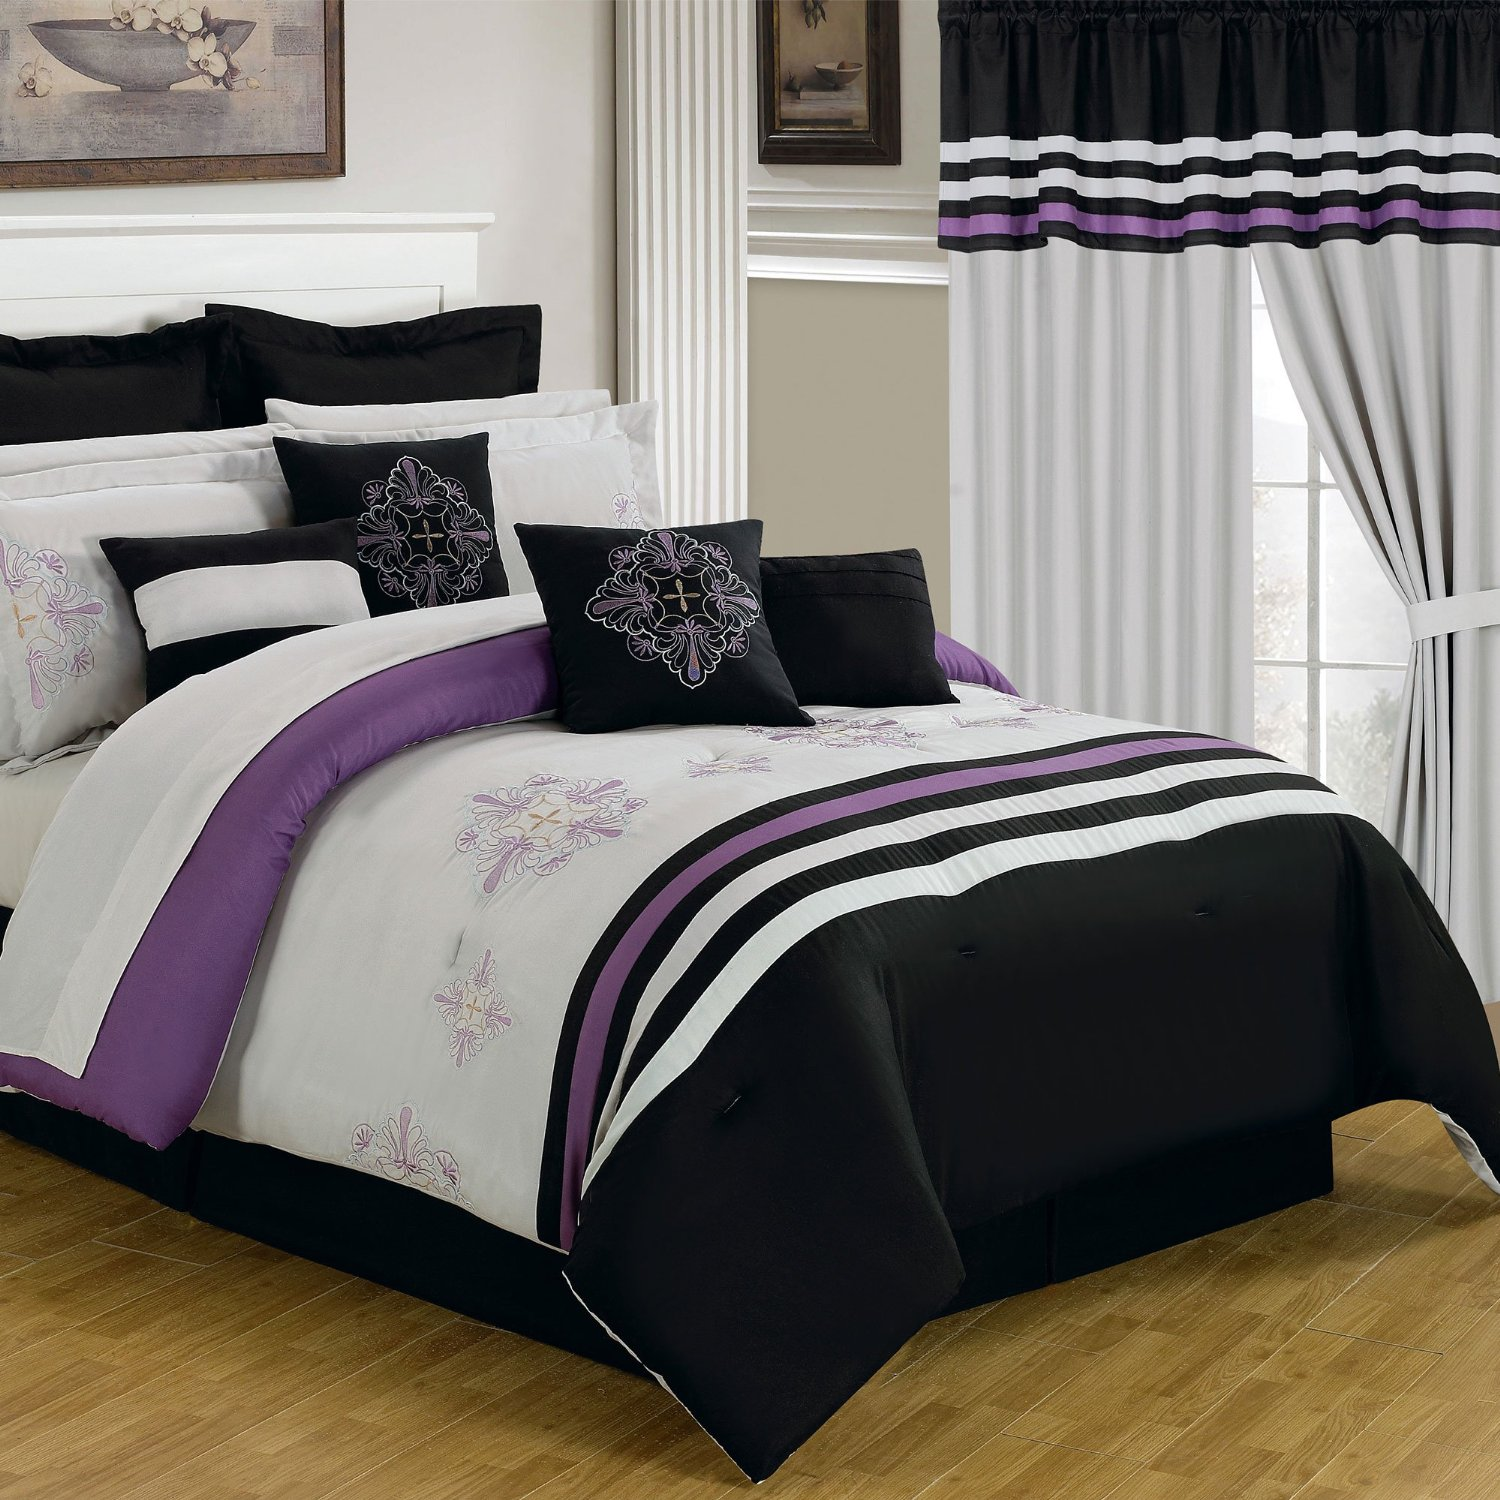 Bedding Decor: Purple Black And White Bedding Sets: Drama Uplifted